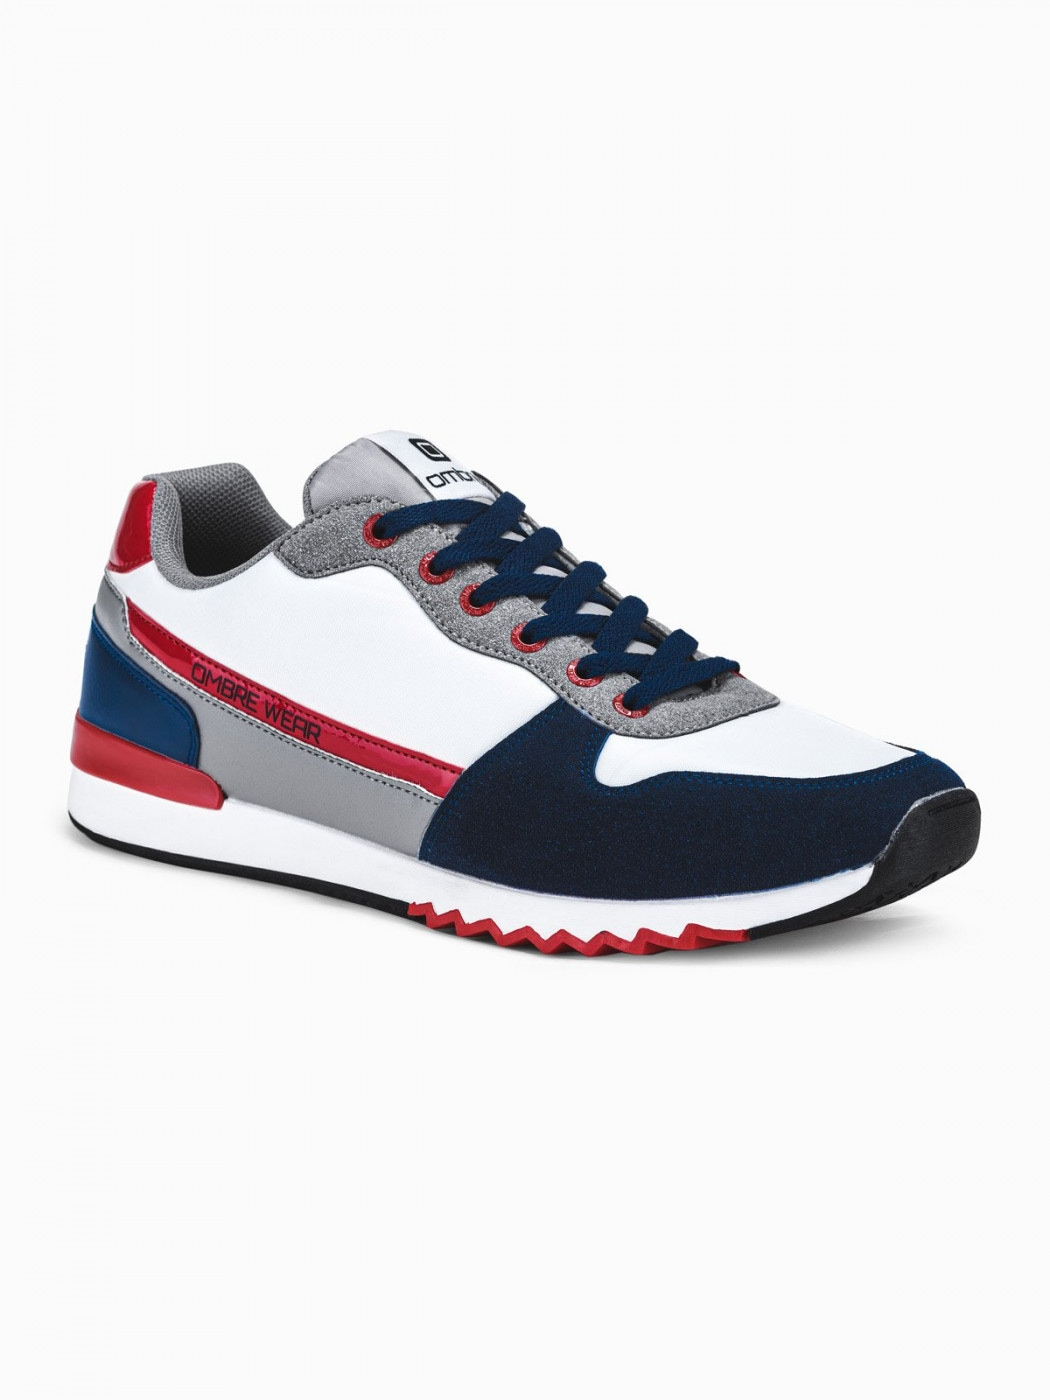 Men's trainers Ombre T337